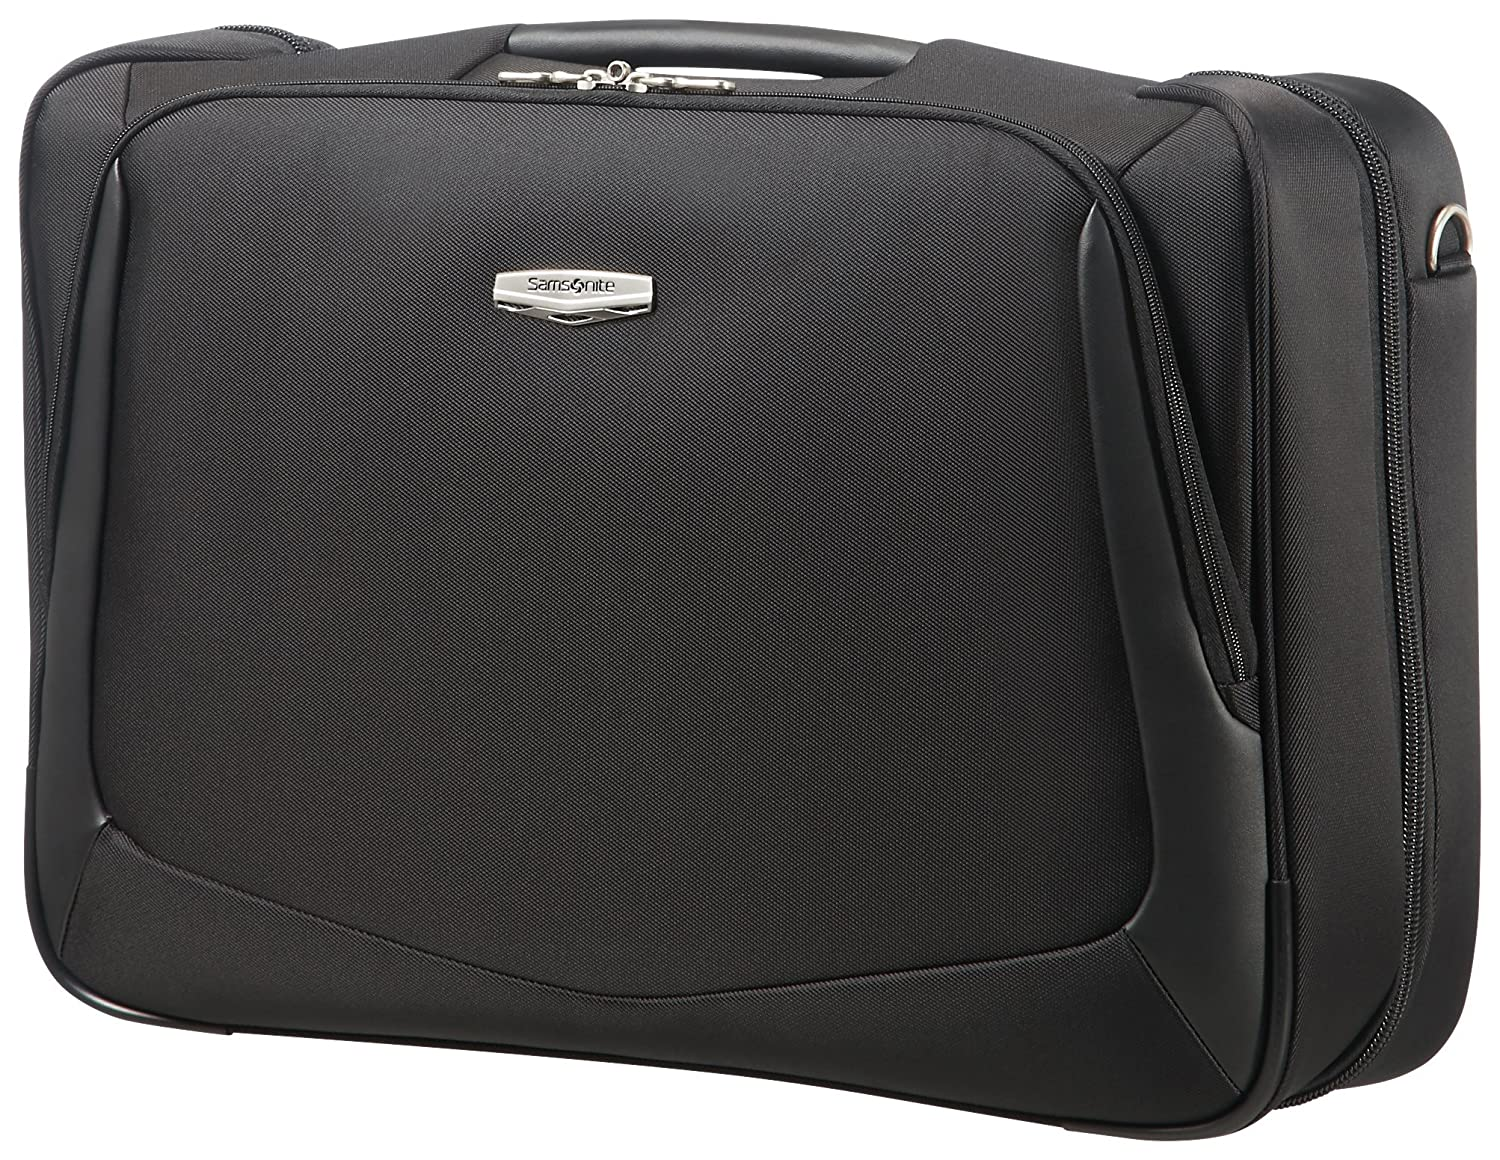 5b61a0db9f Samsonite Travel Garment Bag